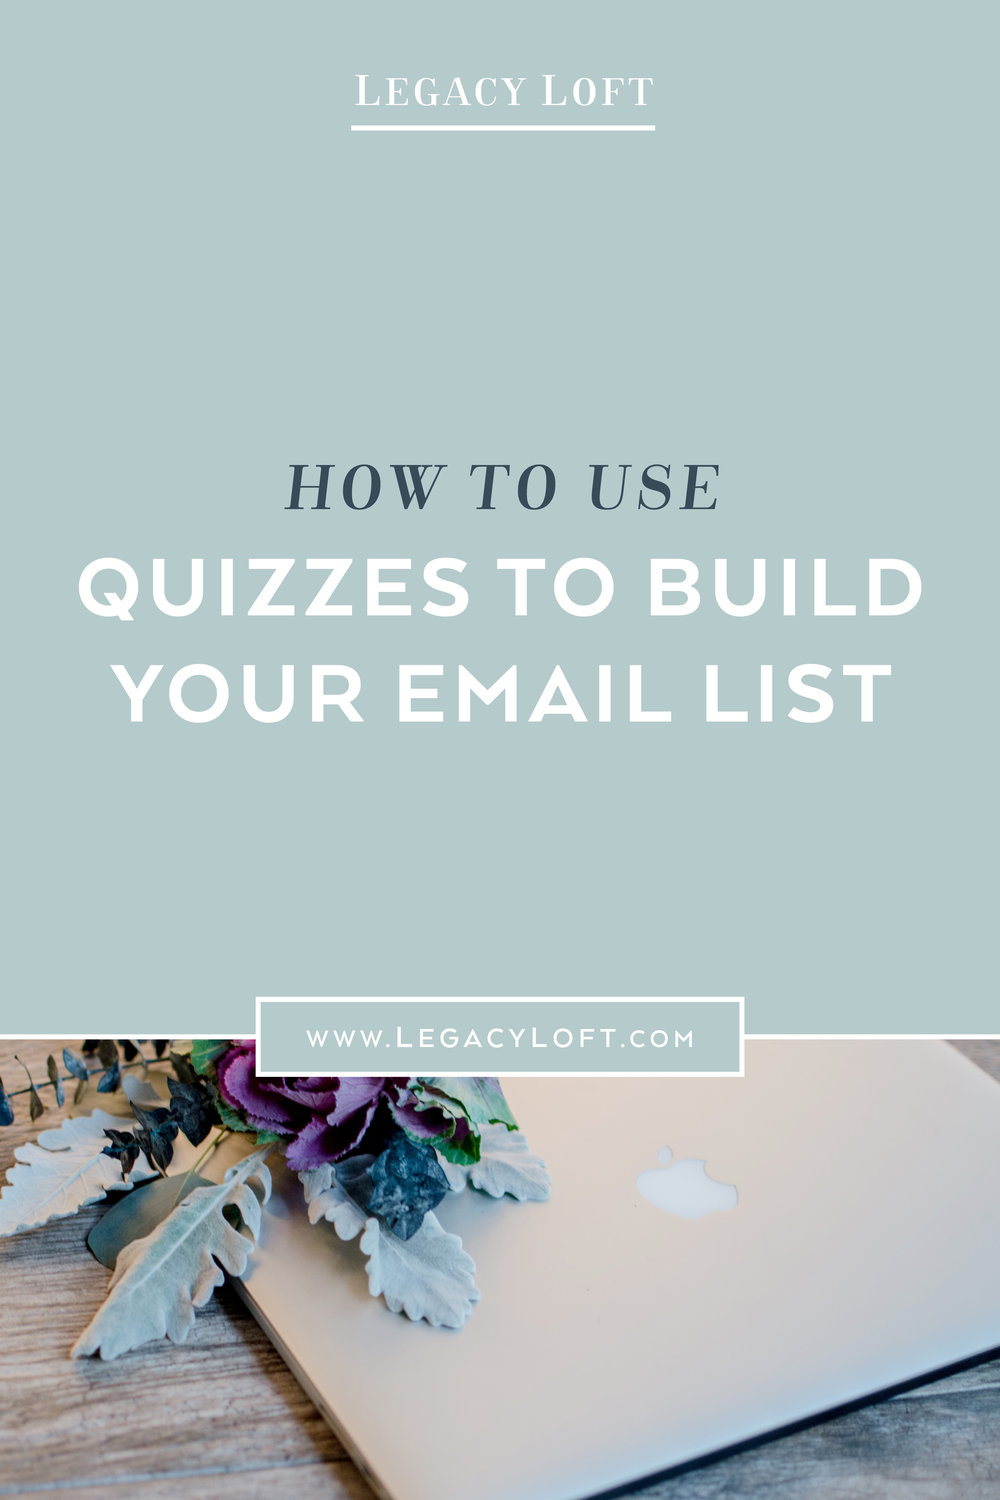 05-24-17-How-to-Use-Quzzes-to-build-your-email-list.jpg